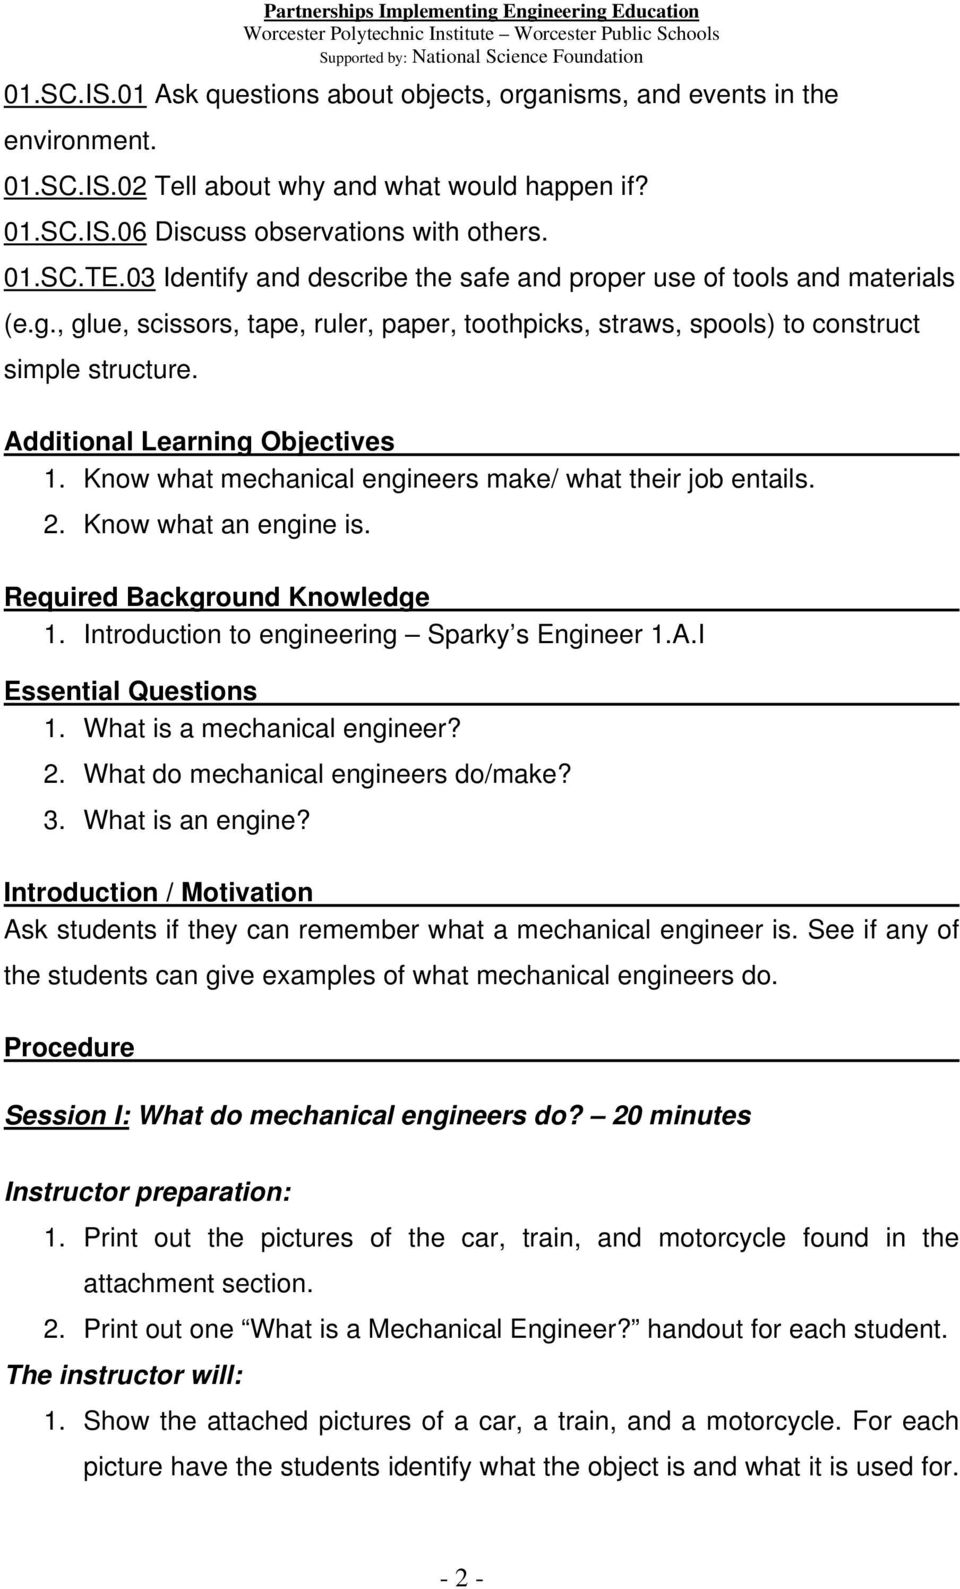 Additional Learning Objectives 1. Know what mechanical engineers make/ what their job entails. 2. Know what an engine is. Required Background Knowledge 1.